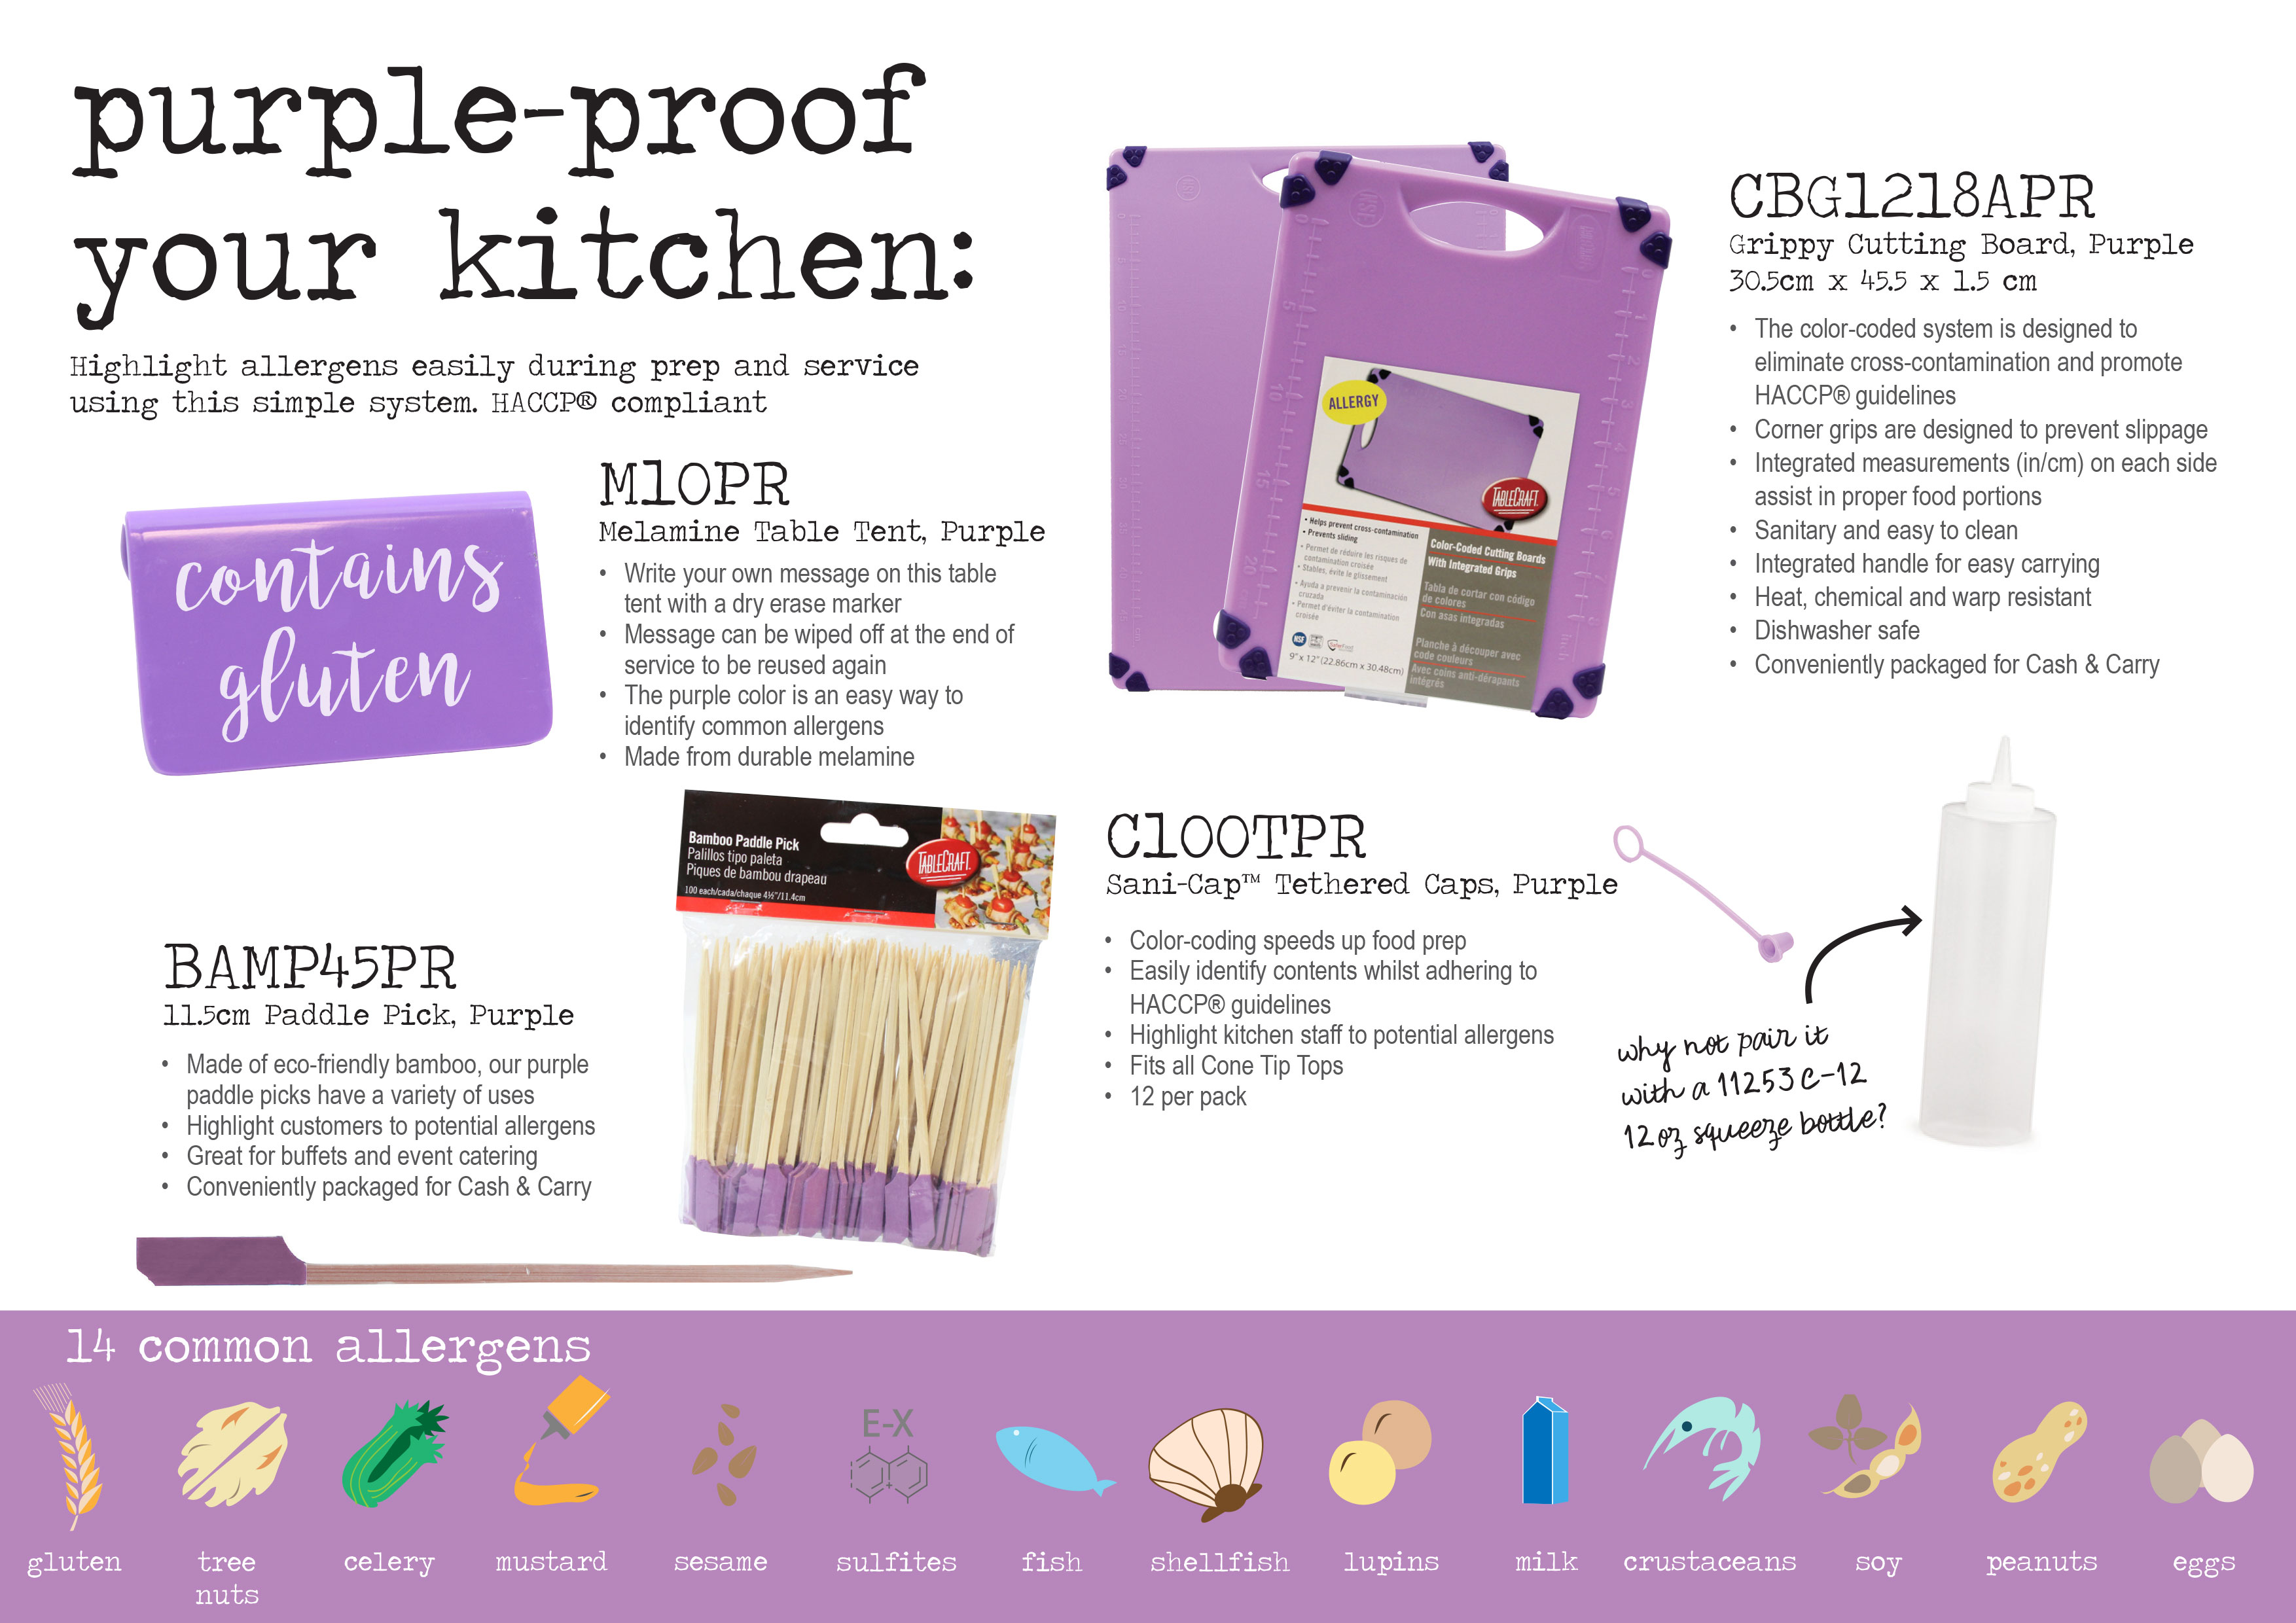 purple proof your kitchen with cutting board